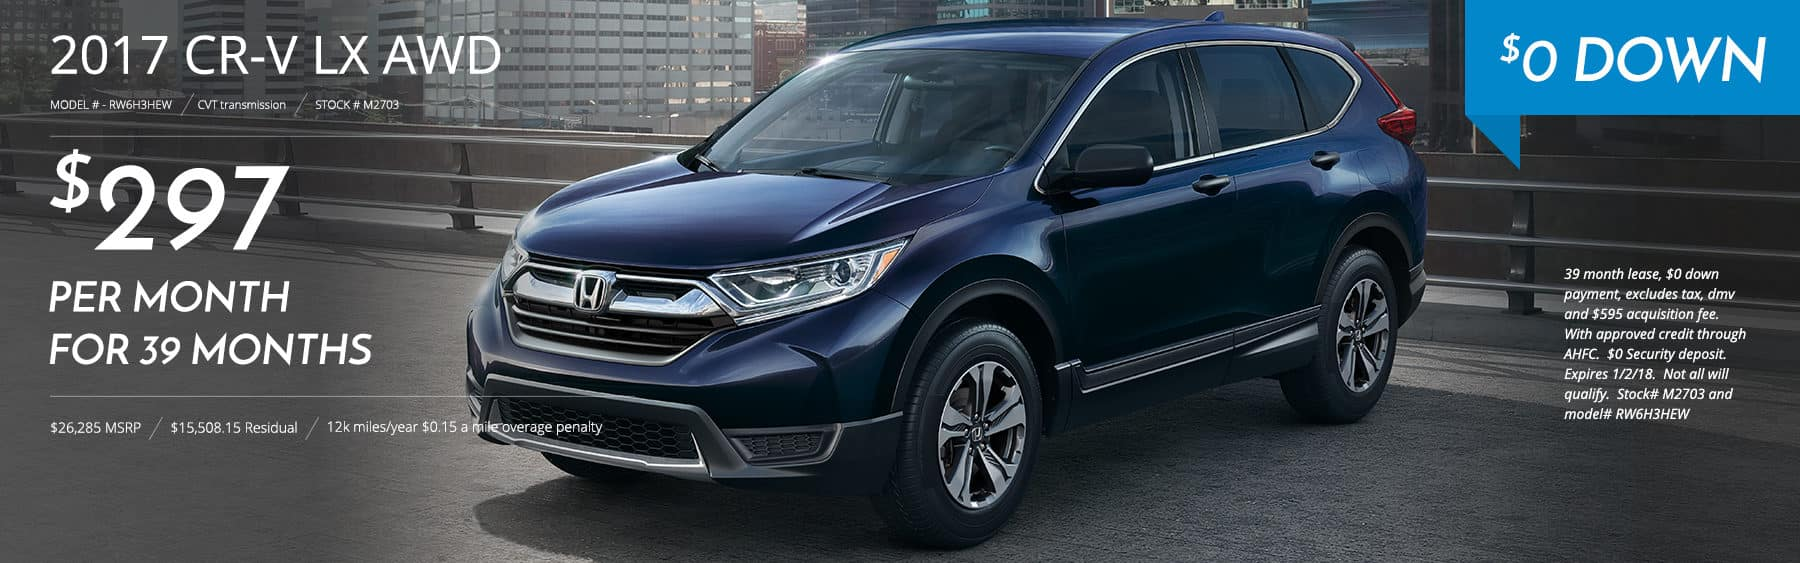 Honda crv lease deals albany ny lamoureph blog for Honda cr v incentives